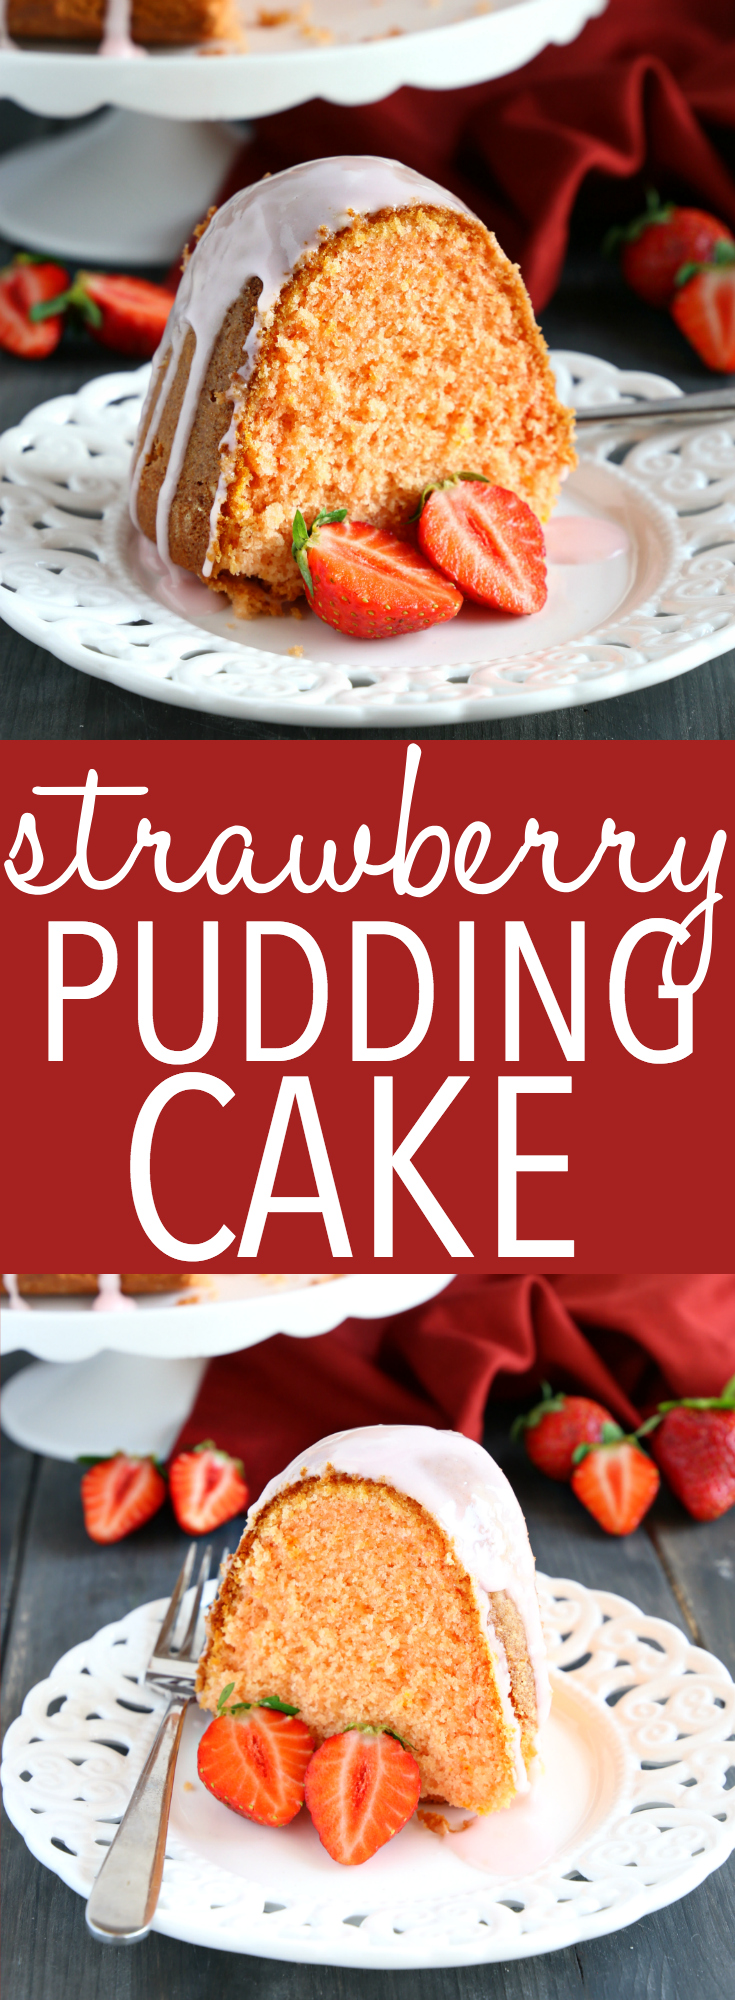 This Best Ever Strawberry Pudding Cake is the perfect summer cake recipe - it's ultra moist and tender with a sweet strawberry glaze! Recipe from thebusybaker.ca! #strawberrypuddingcake #easycake #strawberrycake #easystrawberrydessert #summerdessert #easysummerdessert #puddingcake #easypuddingcake #strawberry #summerstrawberry via @busybakerblog